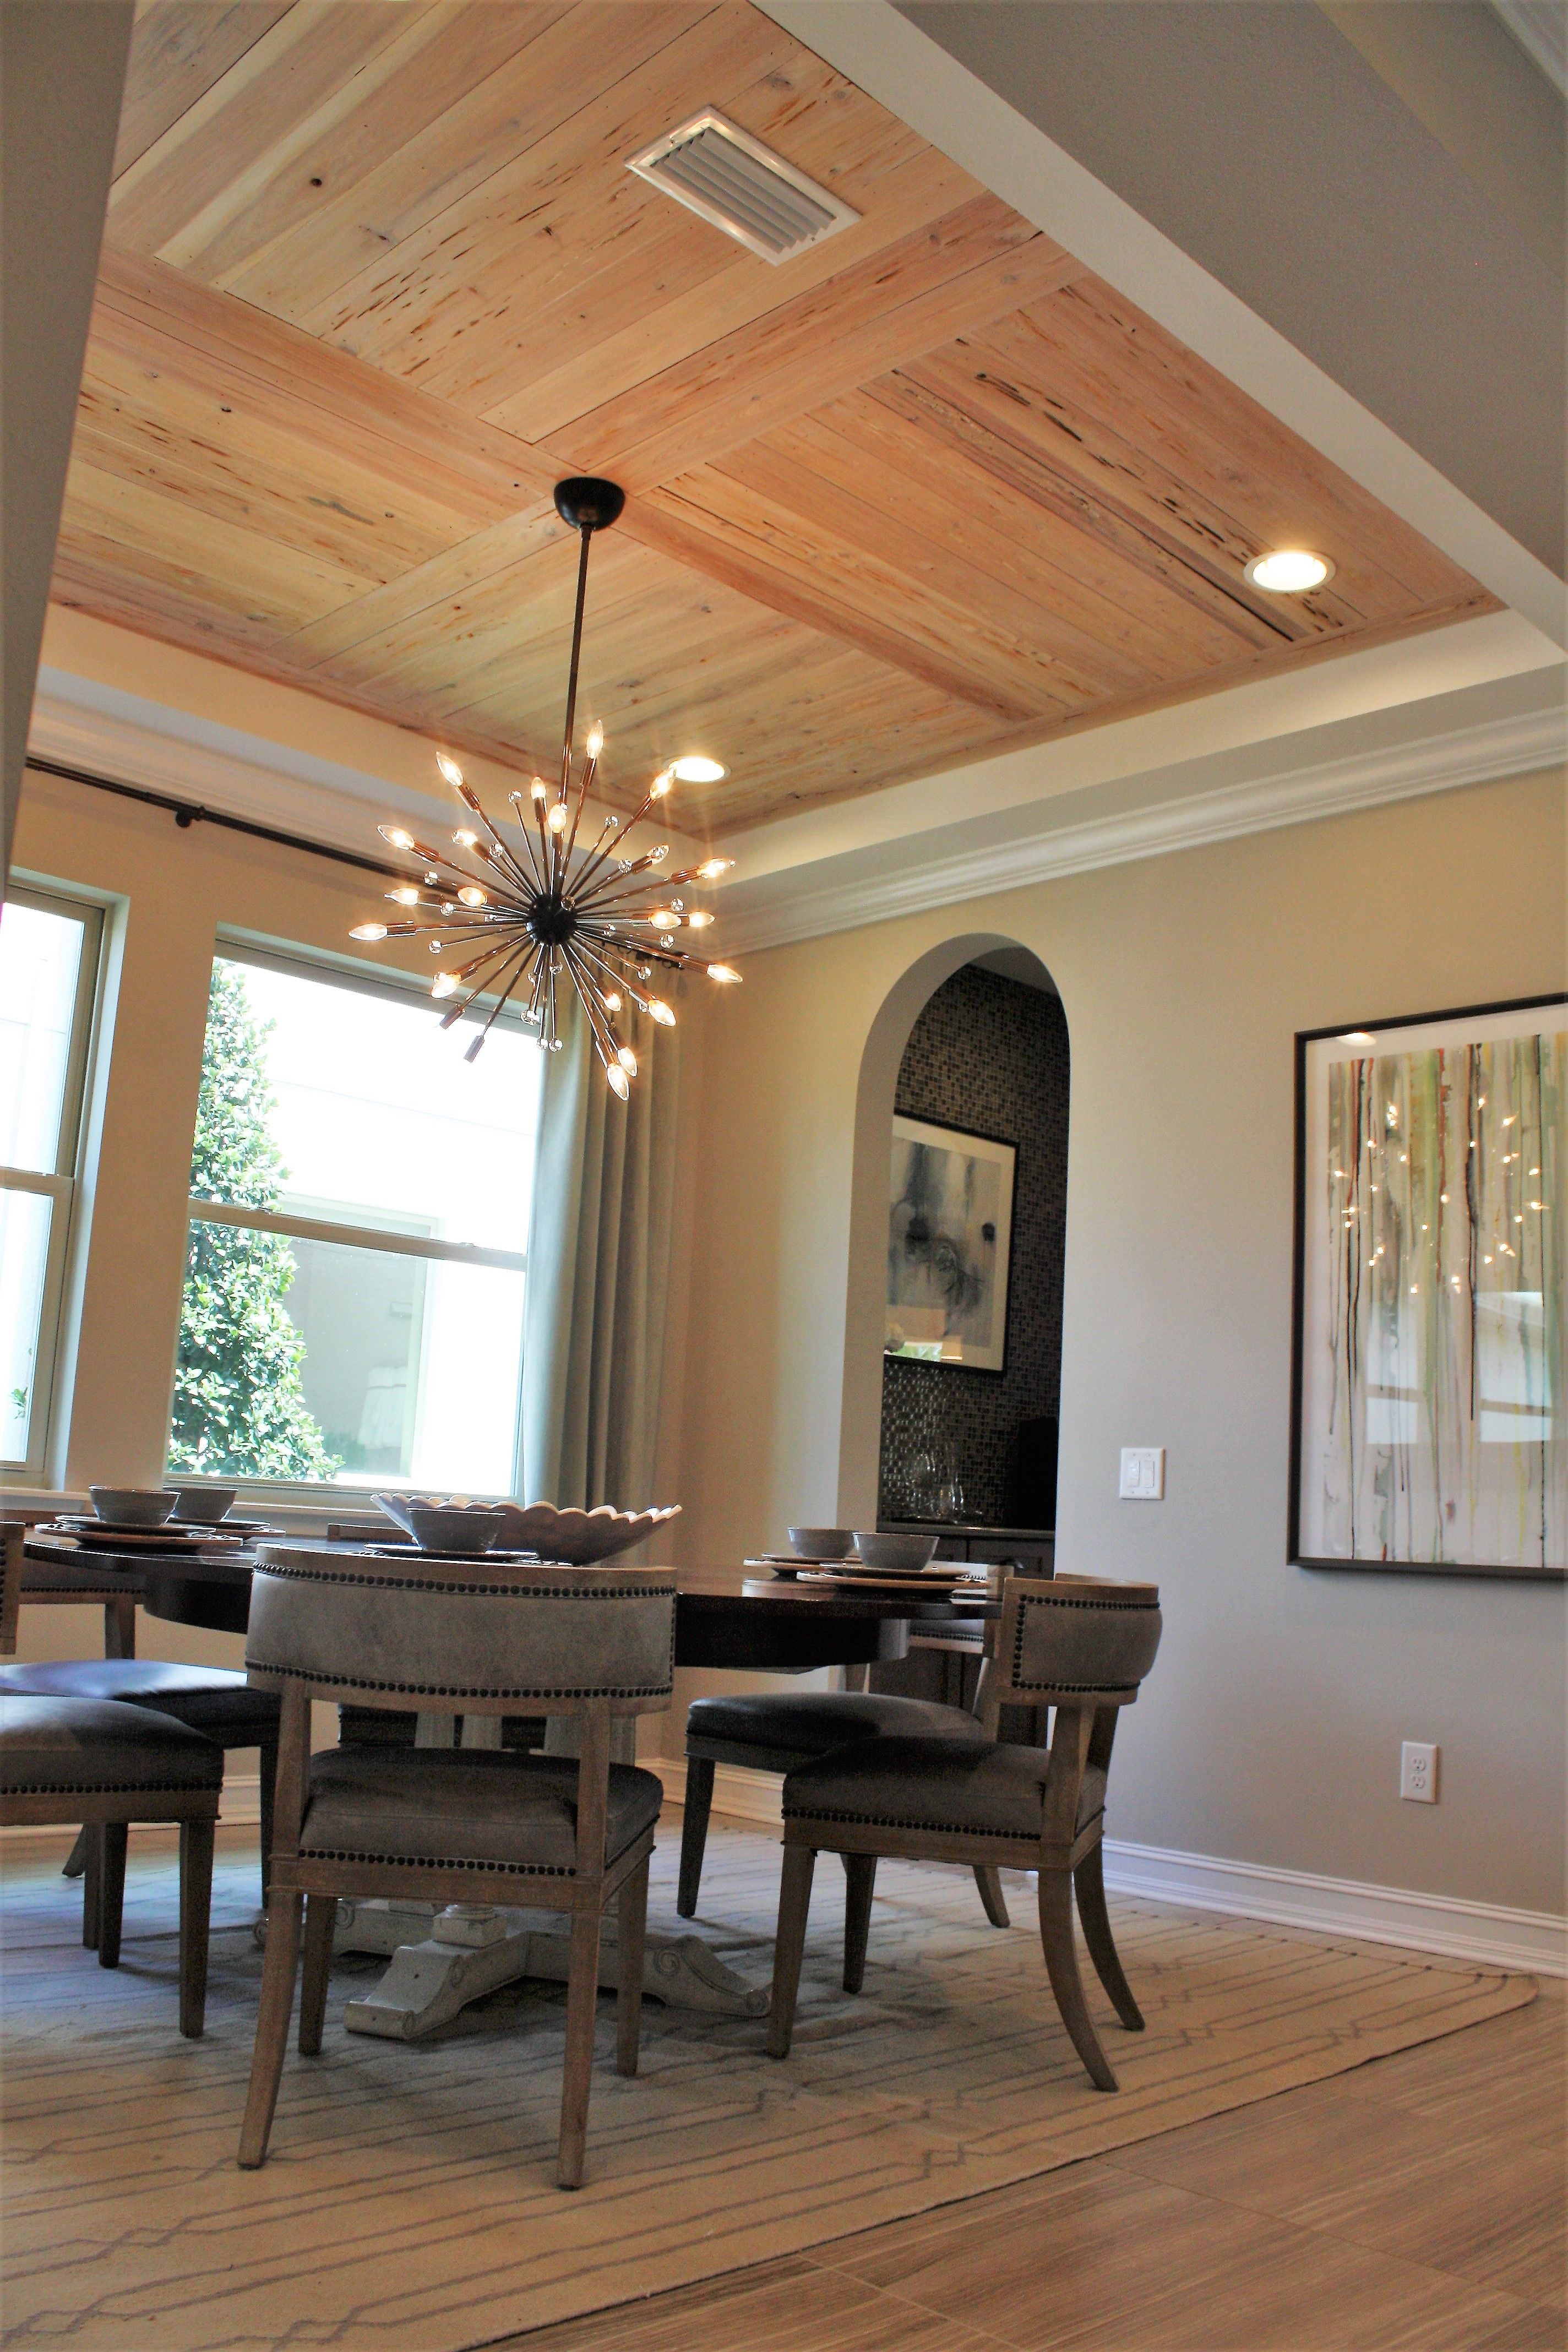 Dining room with wooden ceiling | Round wood table, Round ... on Dining Table Ceiling Design  id=40662